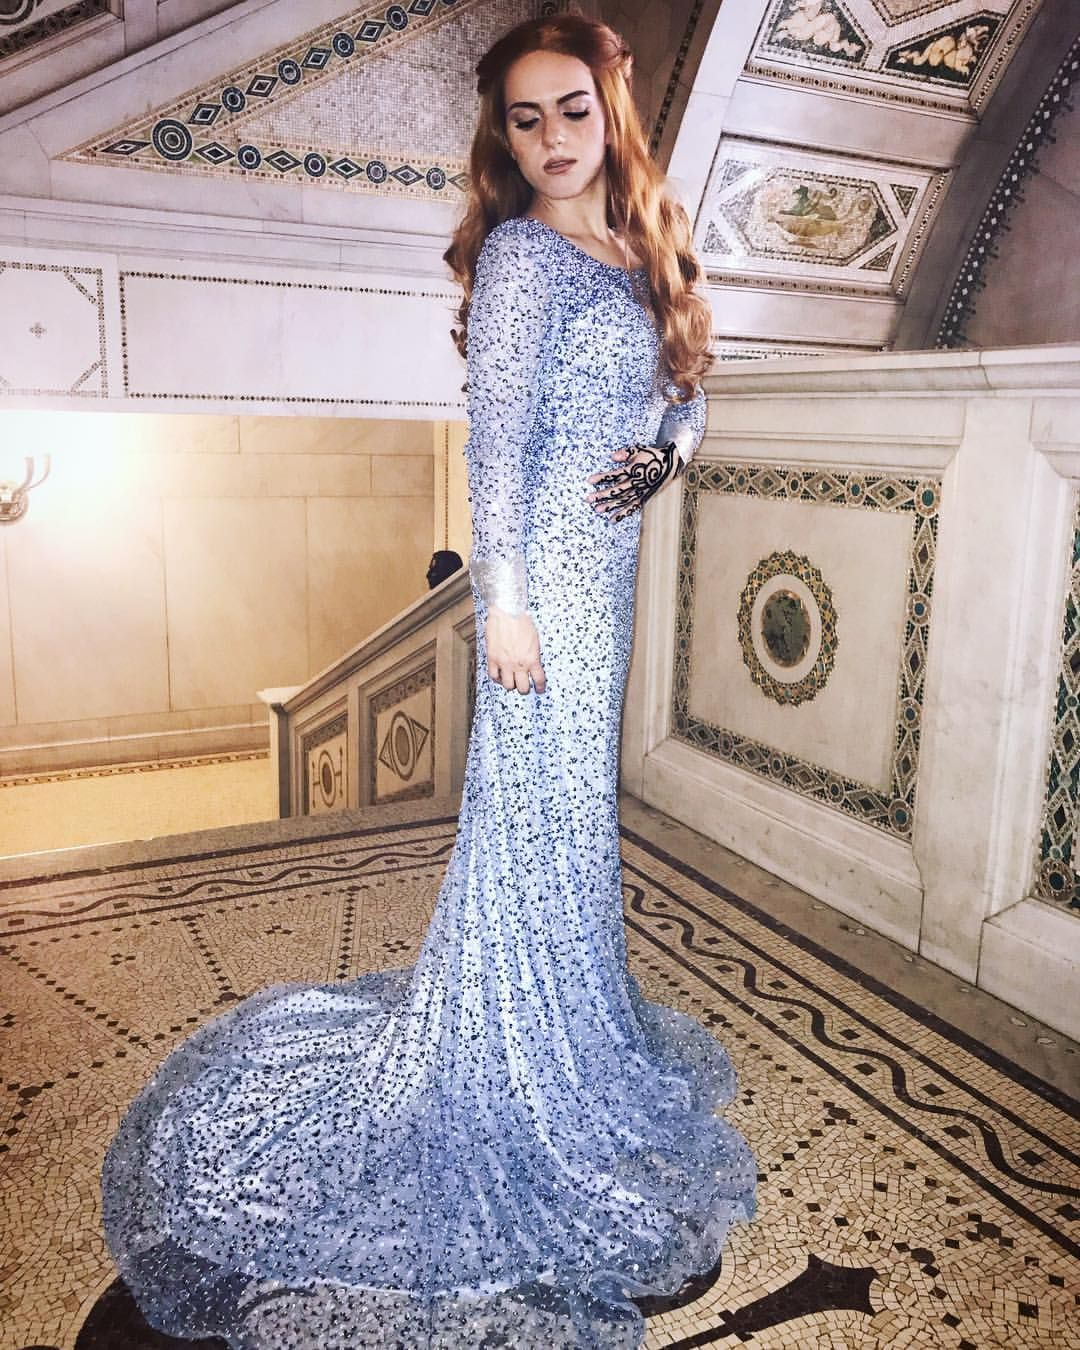 Feyre Archeron S Starfall Dress With Images Book Dress